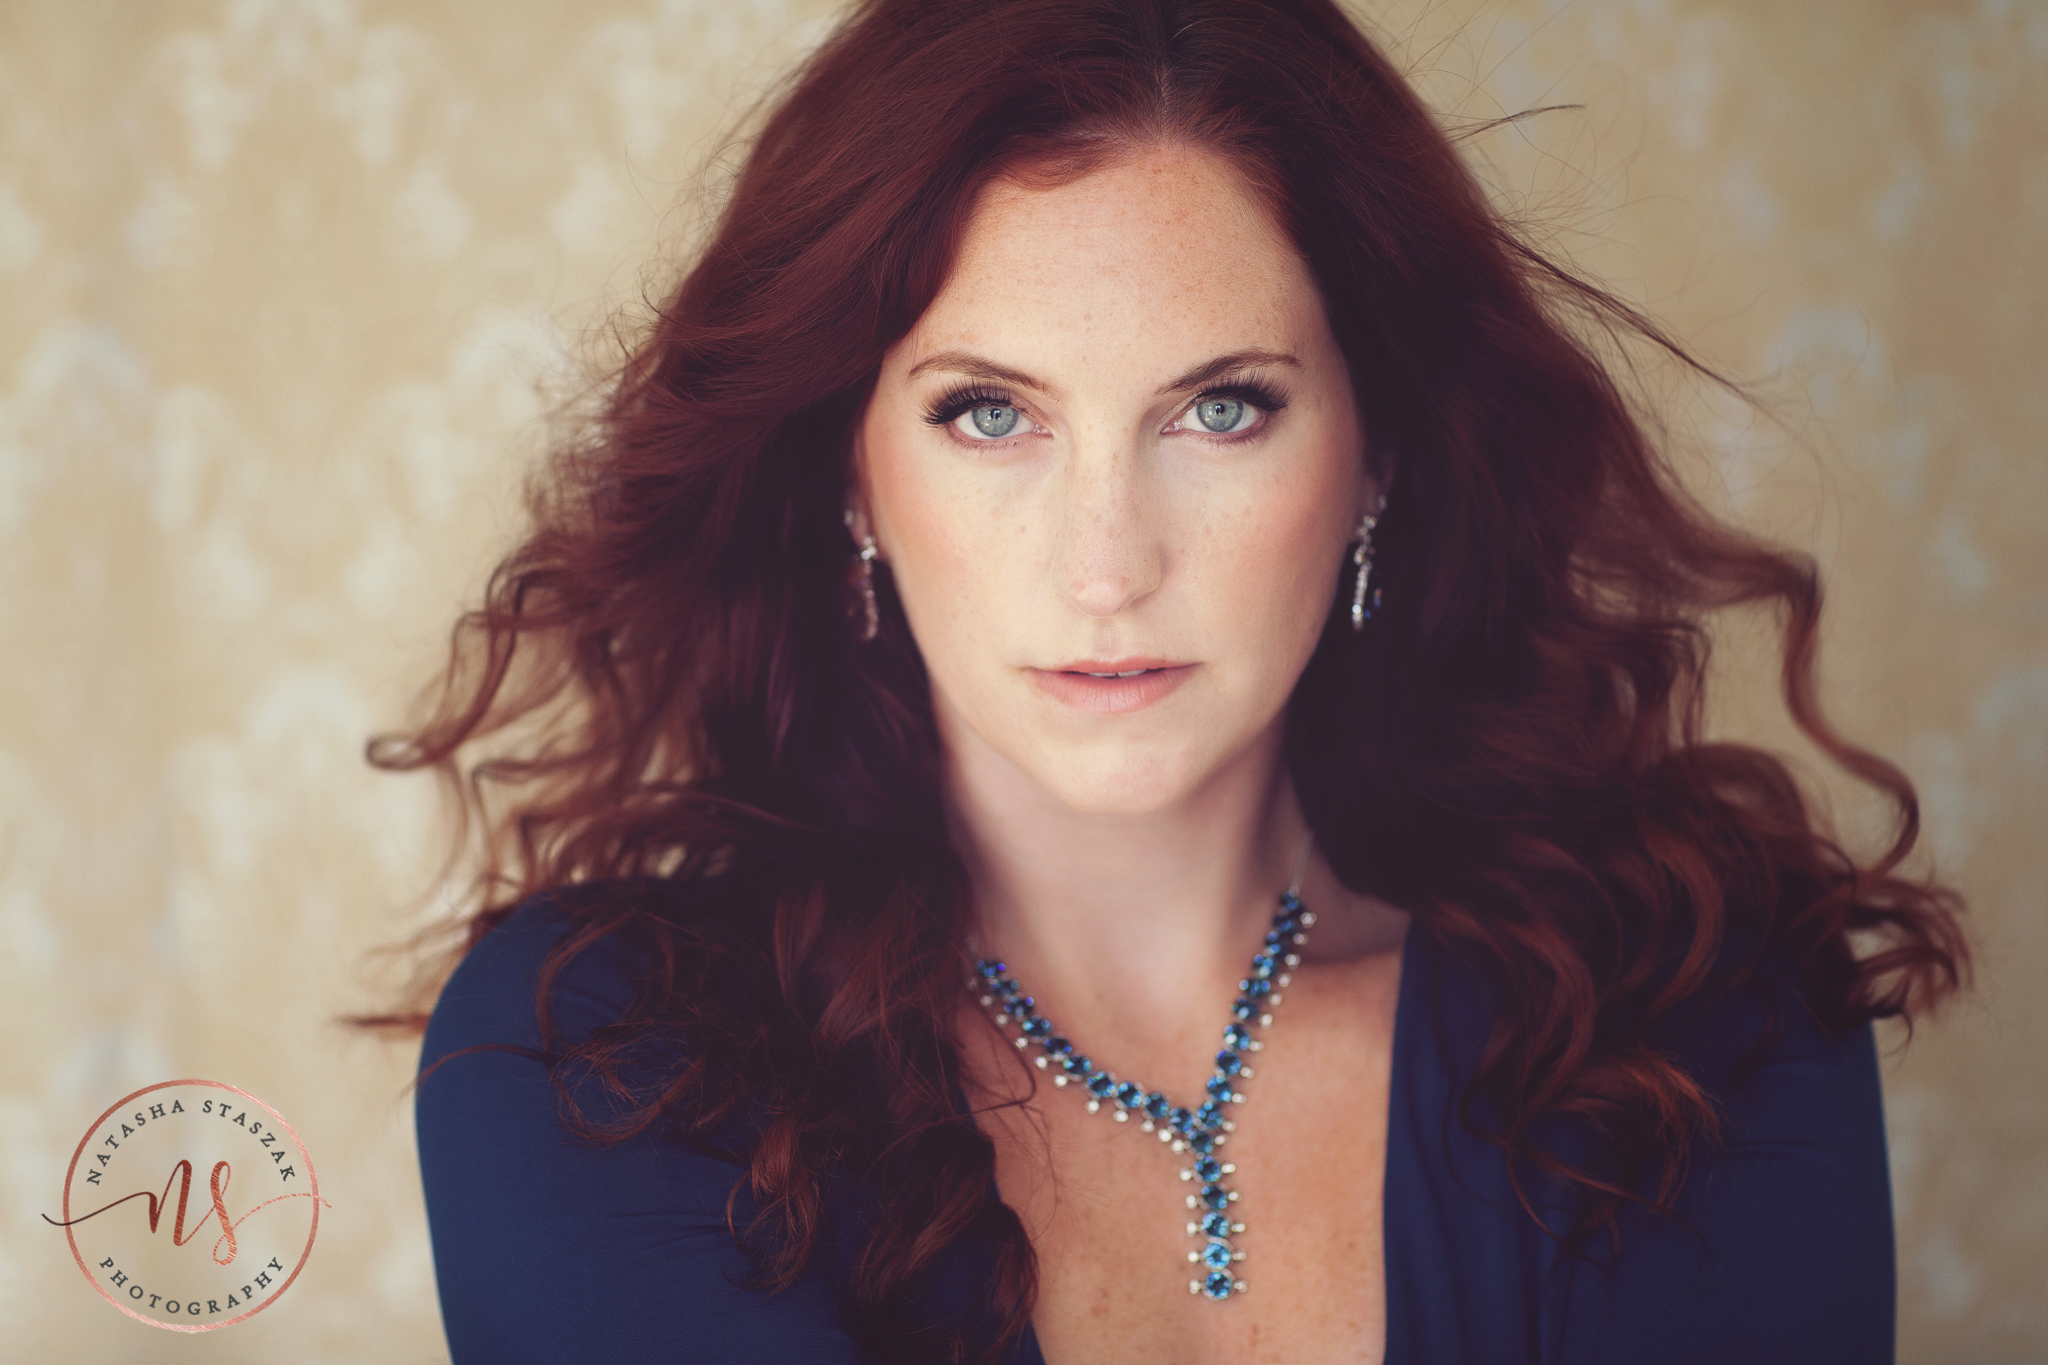 Gorgeous red head Cortney Chyme portrait with blue eyes and blue dress in Buffalo NY